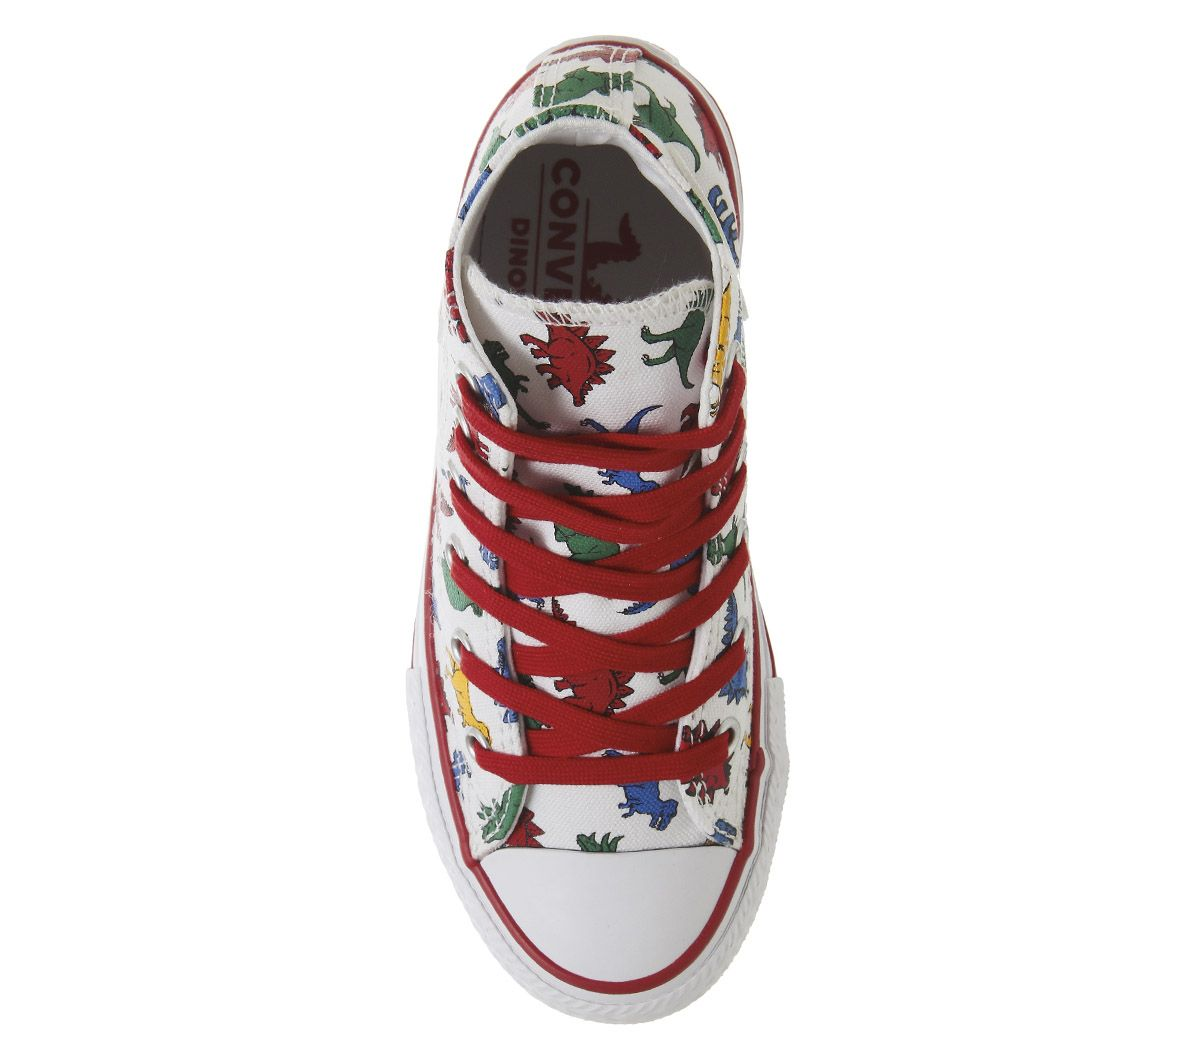 finest selection 2f6e7 cfdd0 Enfants-Converse-All-Star-Hi-Mid-Tailles-Baskets-